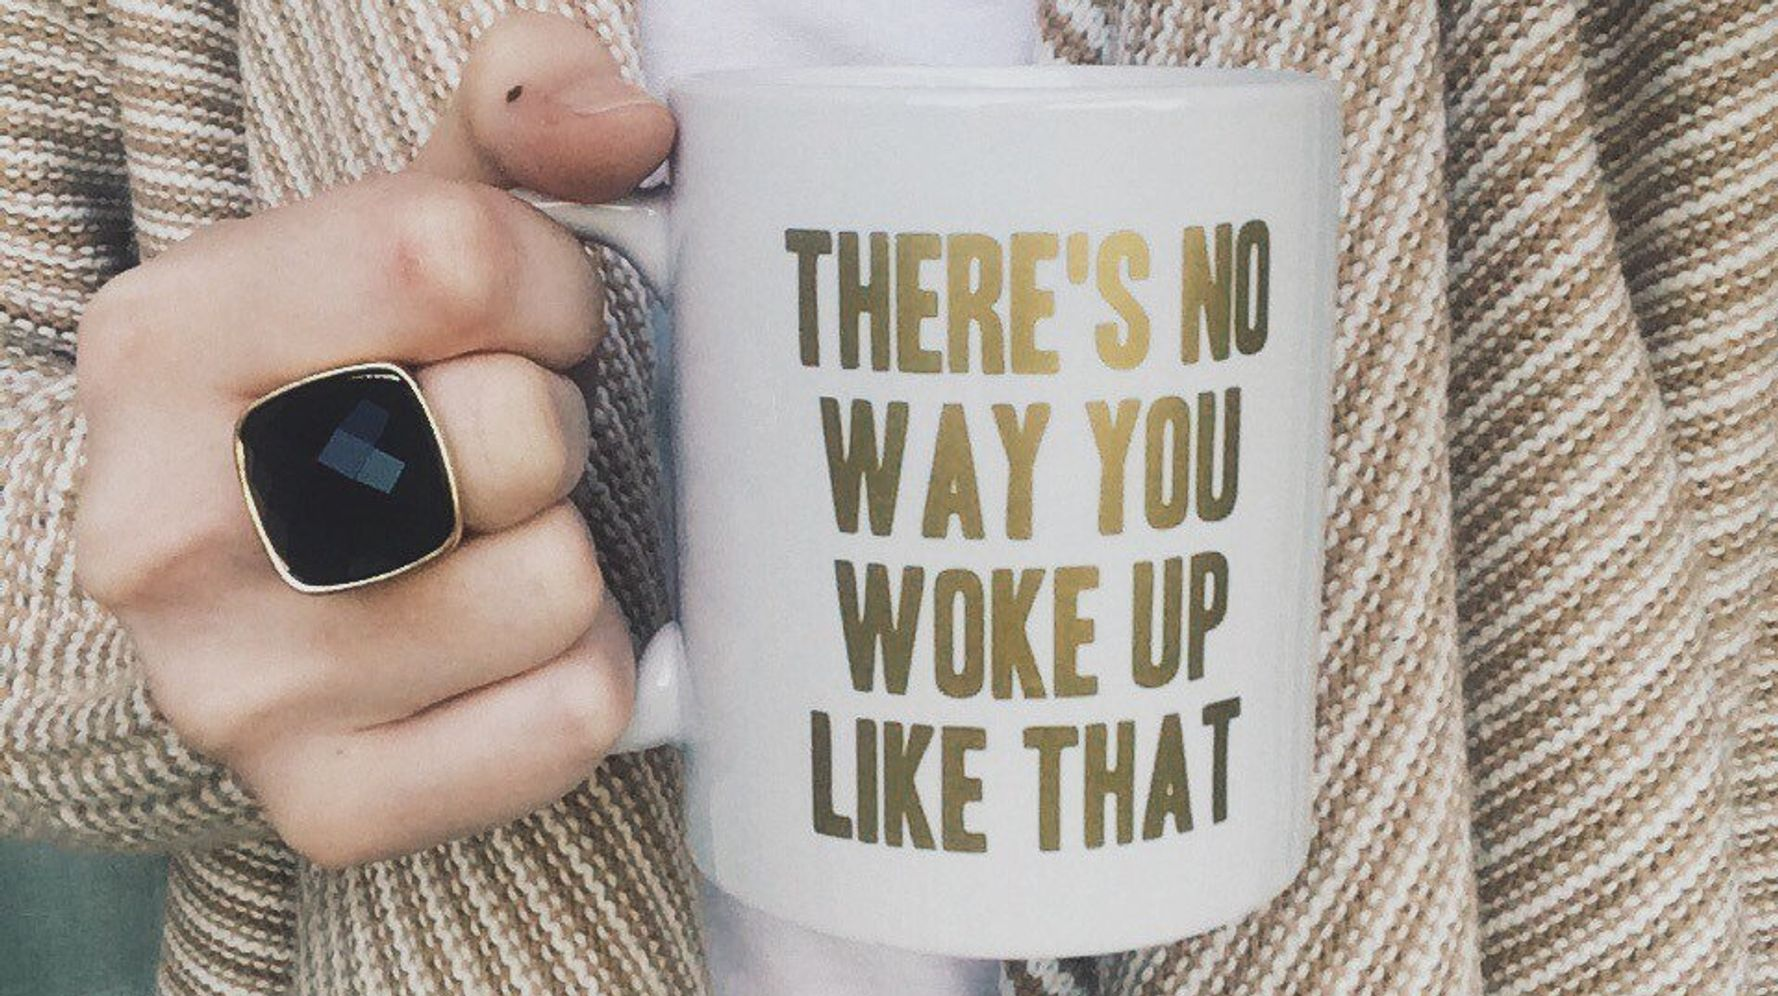 21 Brutally Honest Coffee Mugs That Nail Your Morning